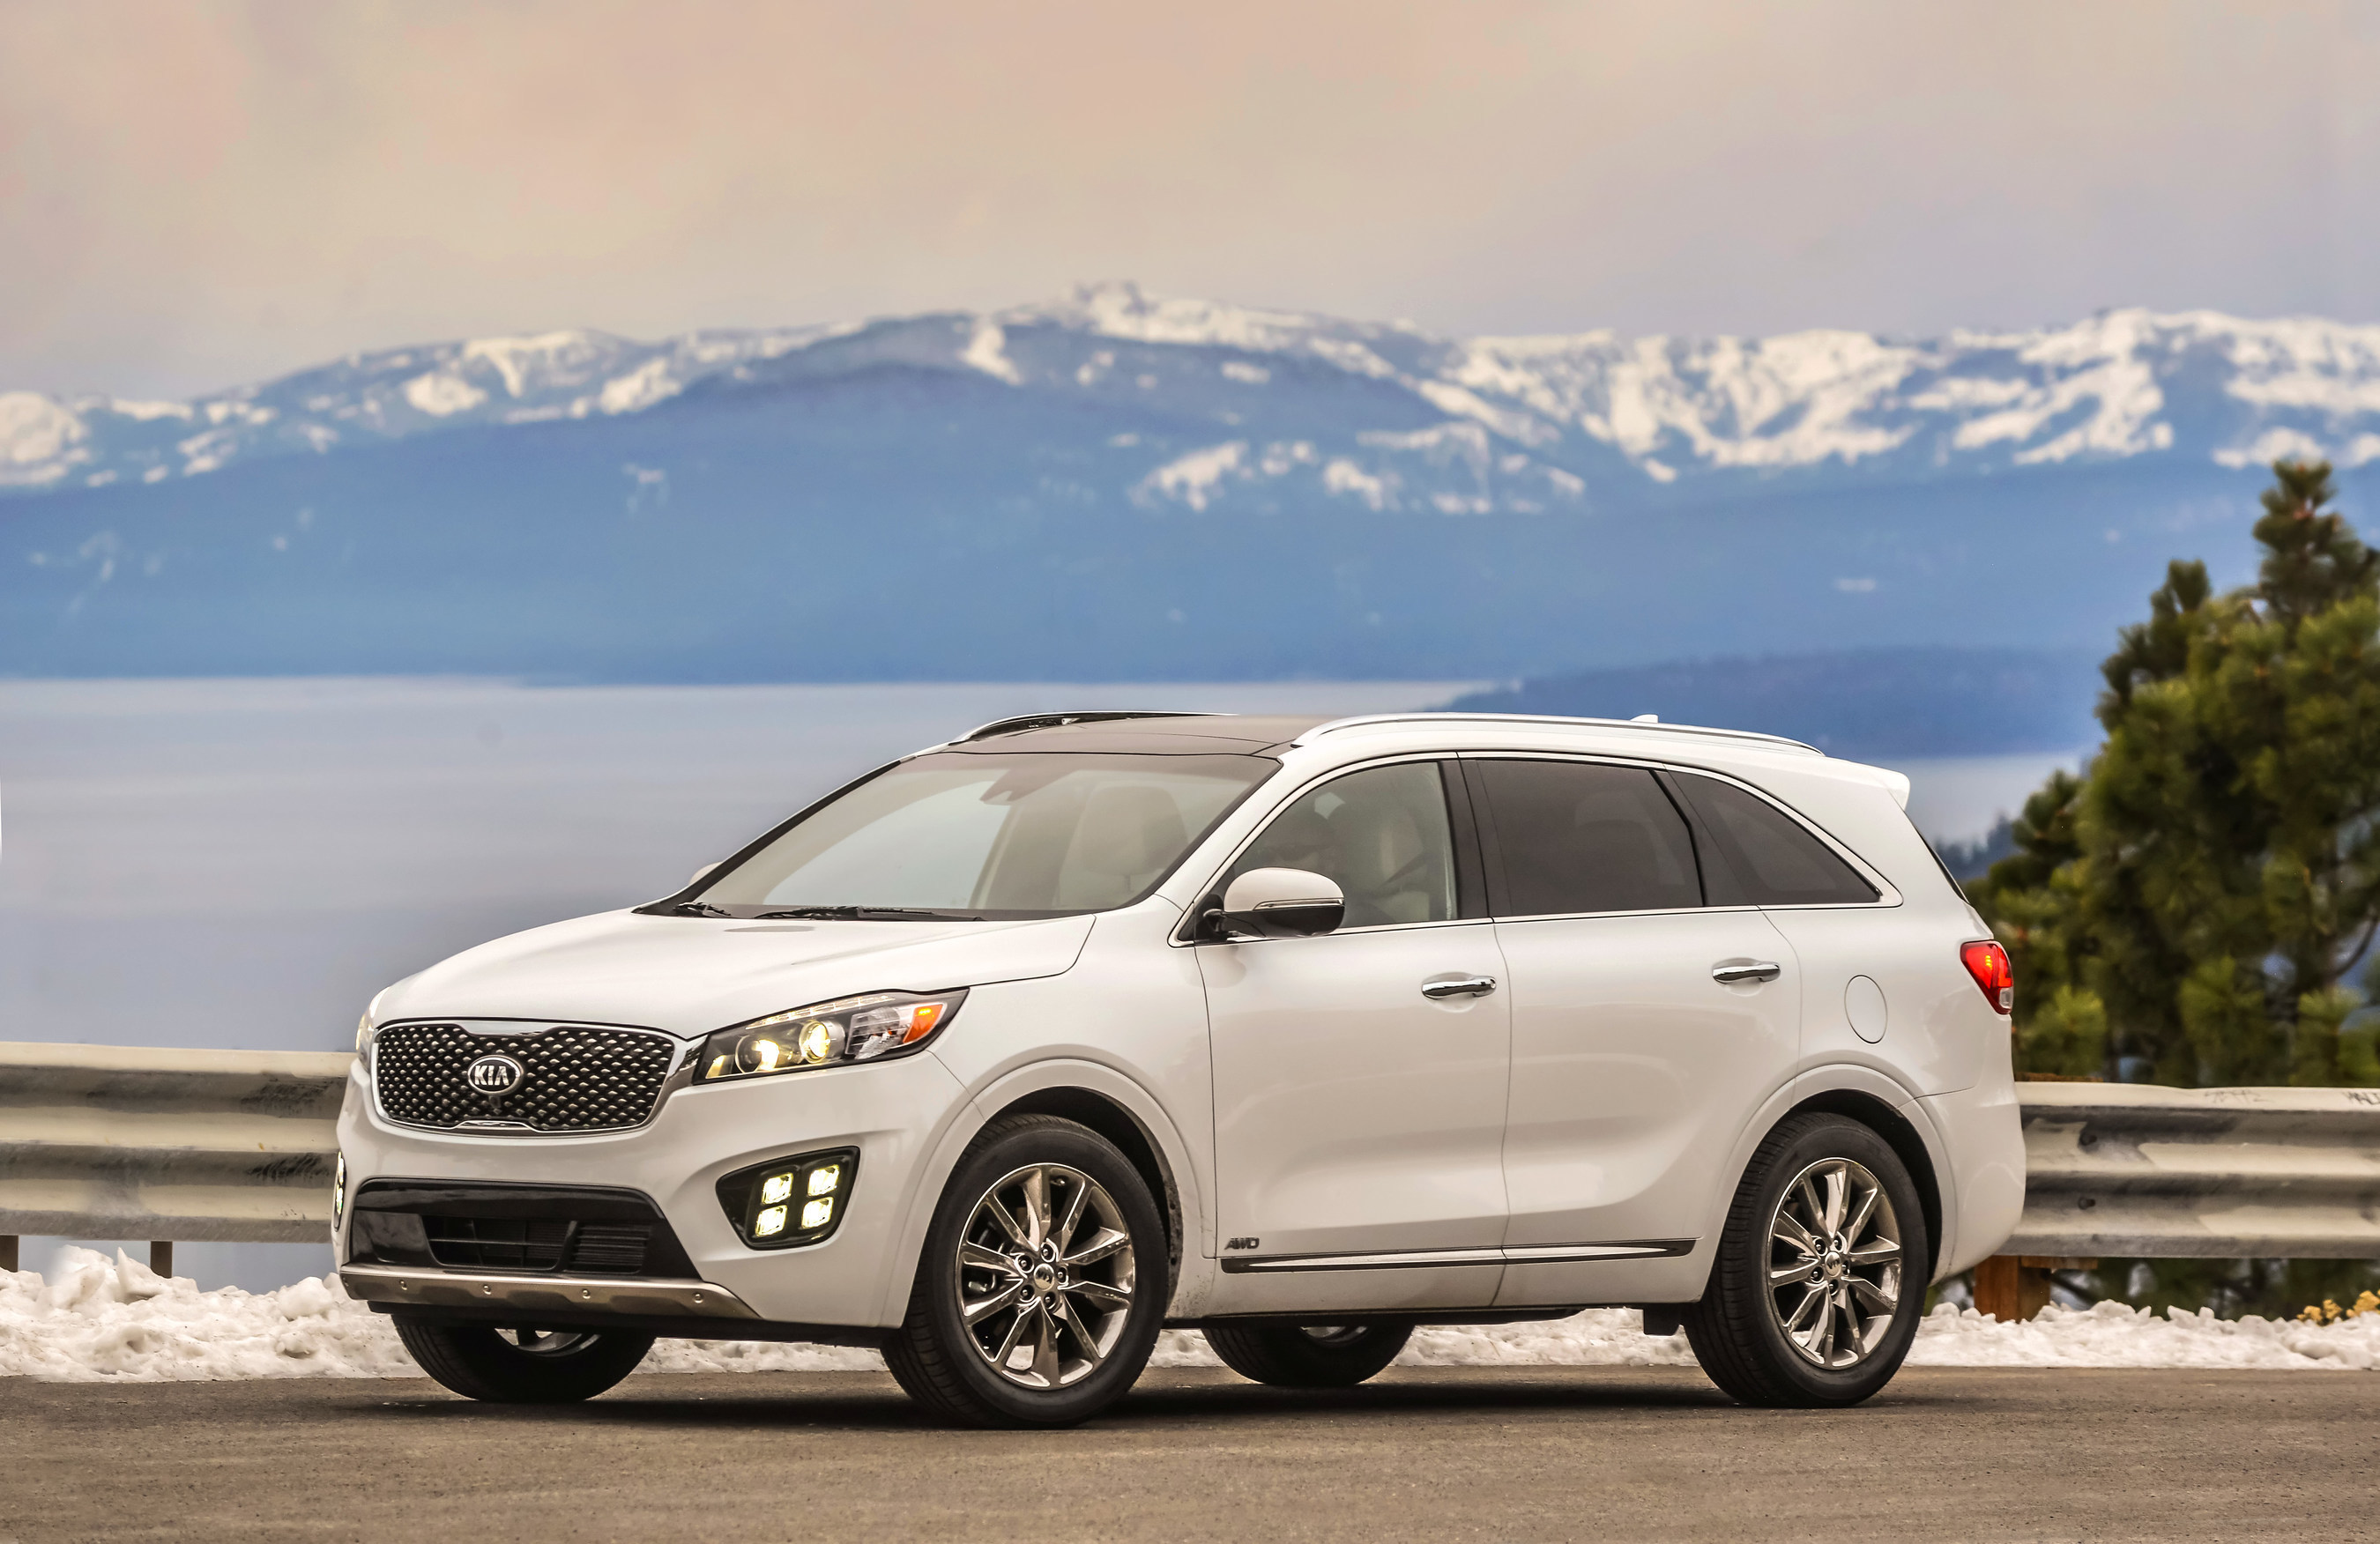 2017 Sorento Earns Top Safety Pick Plus Rating from Insurance Institute for Highway Safety